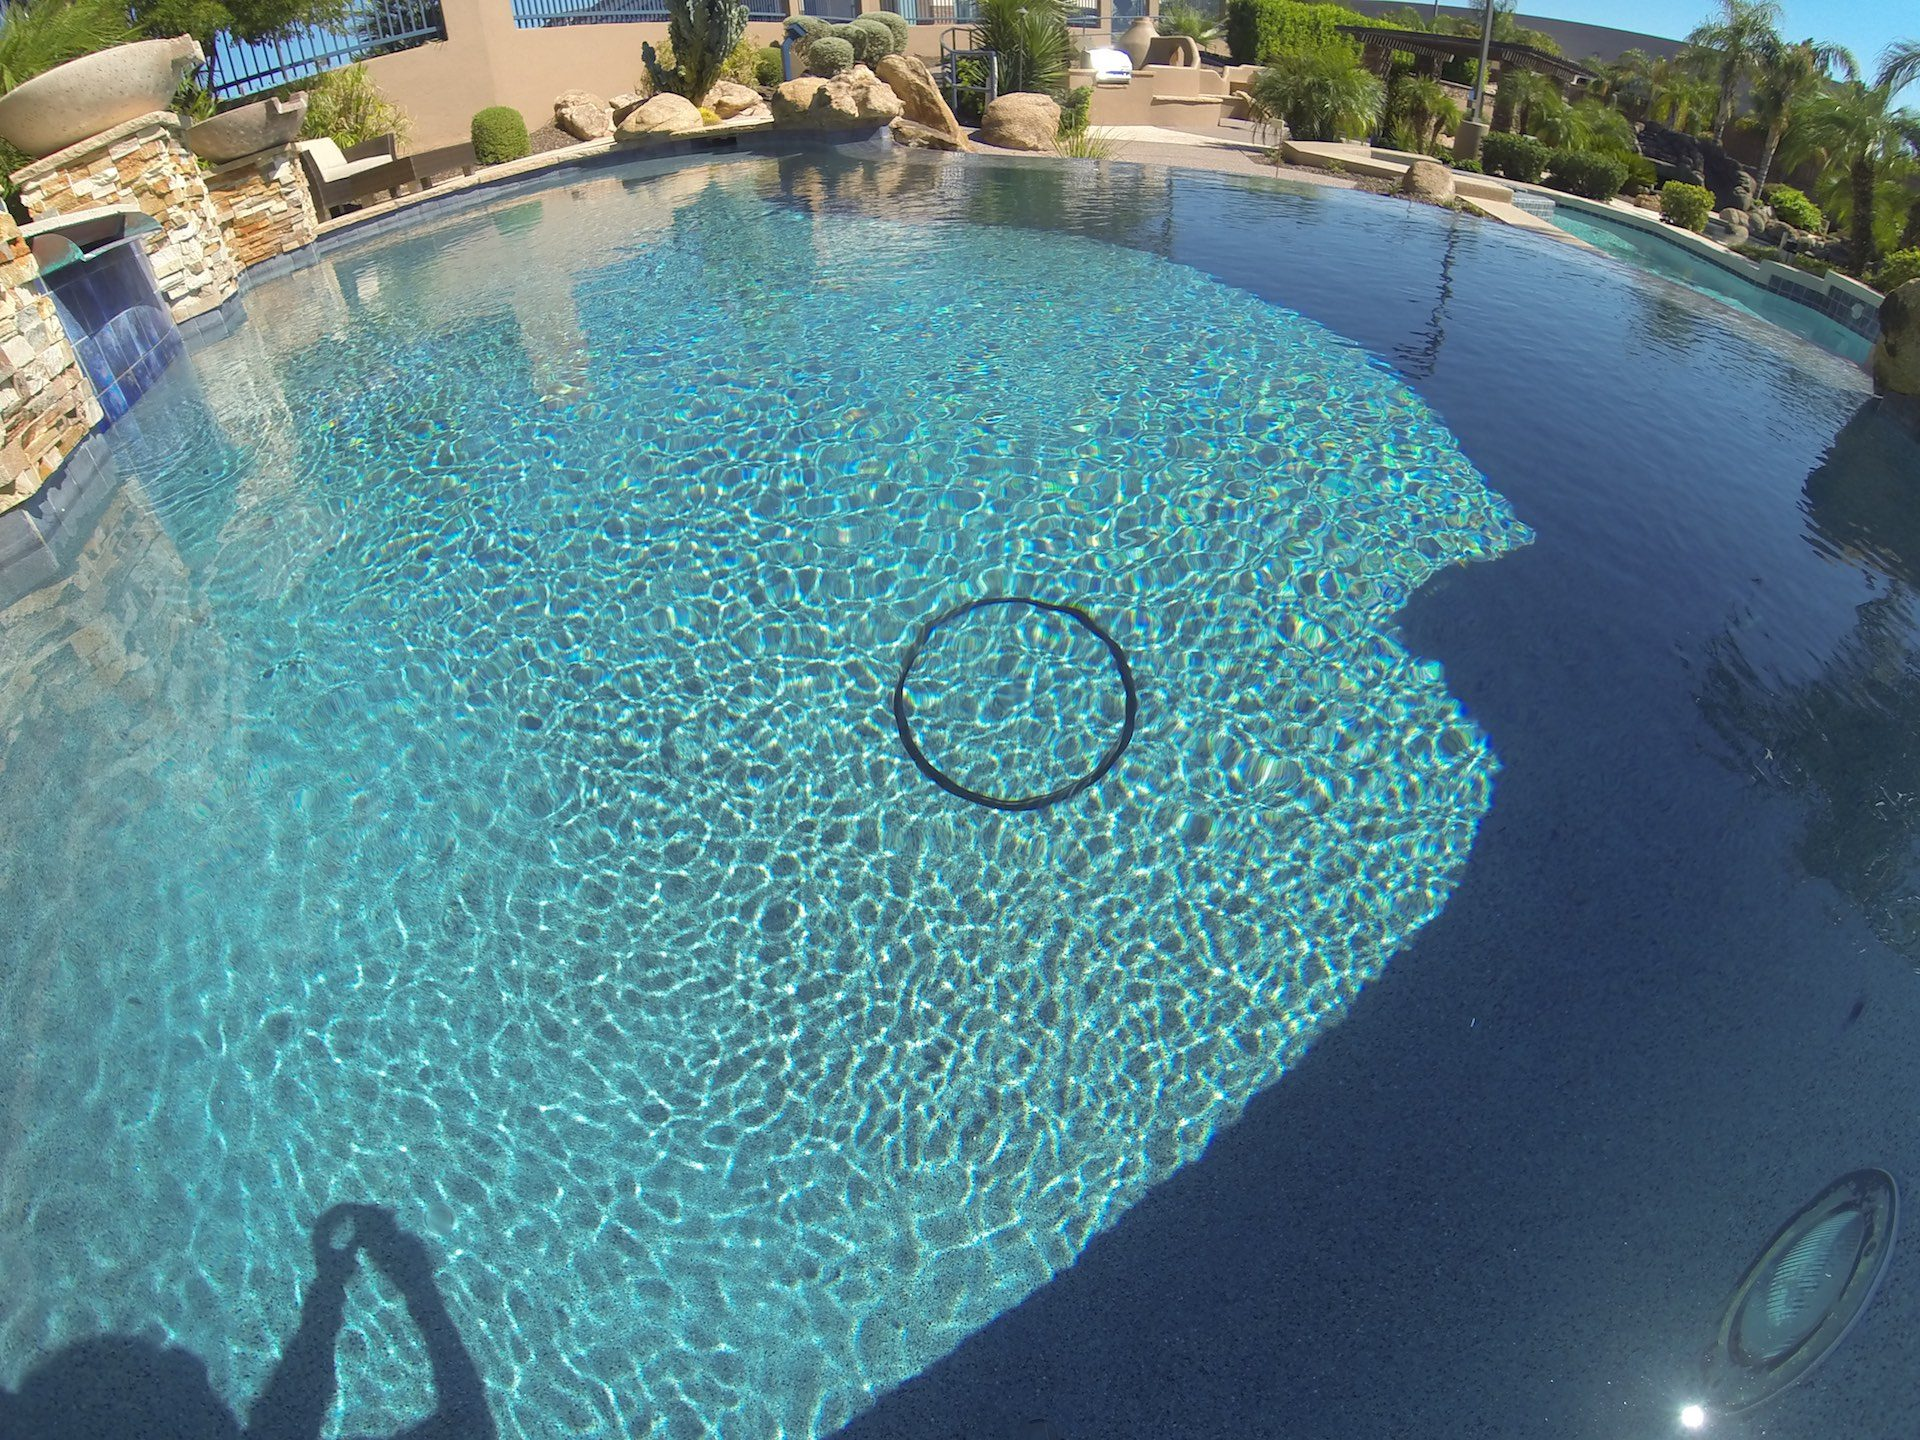 The rolls royce of pool cleaners infloor pool cleaning australia for Pop up swimming pool maintenance